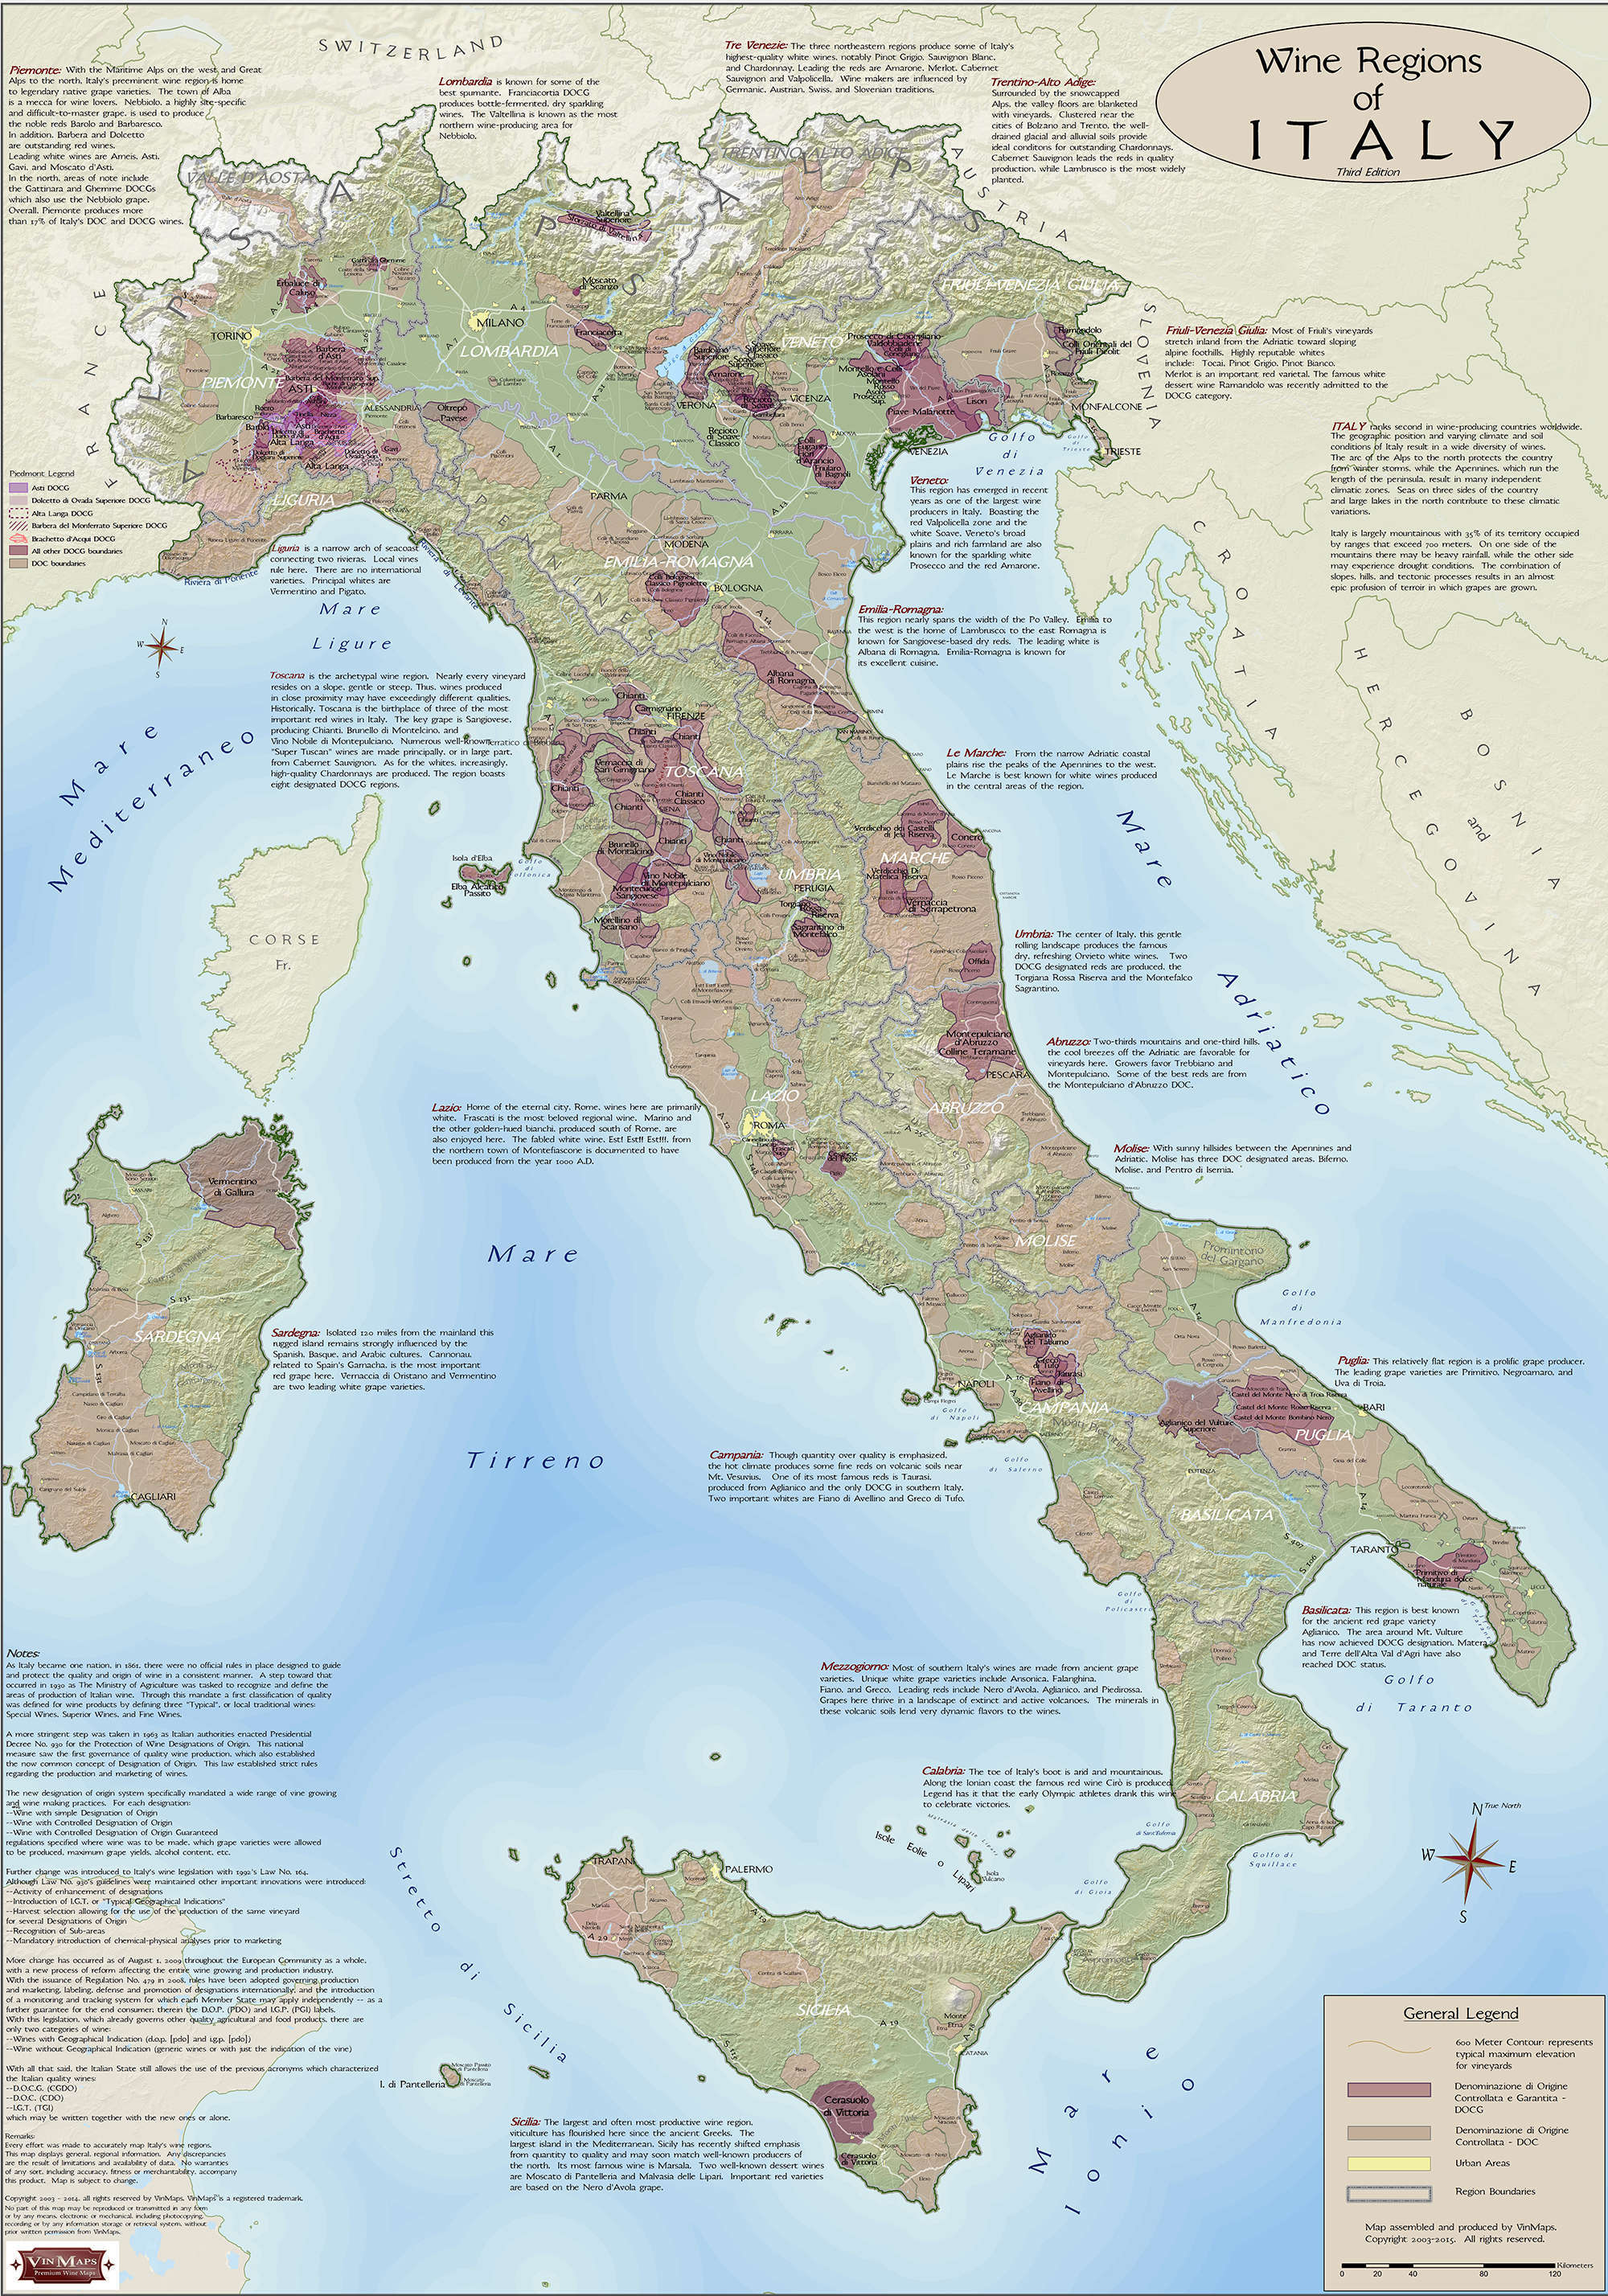 Pics Of Italy Map.Italy Wine Regions Map